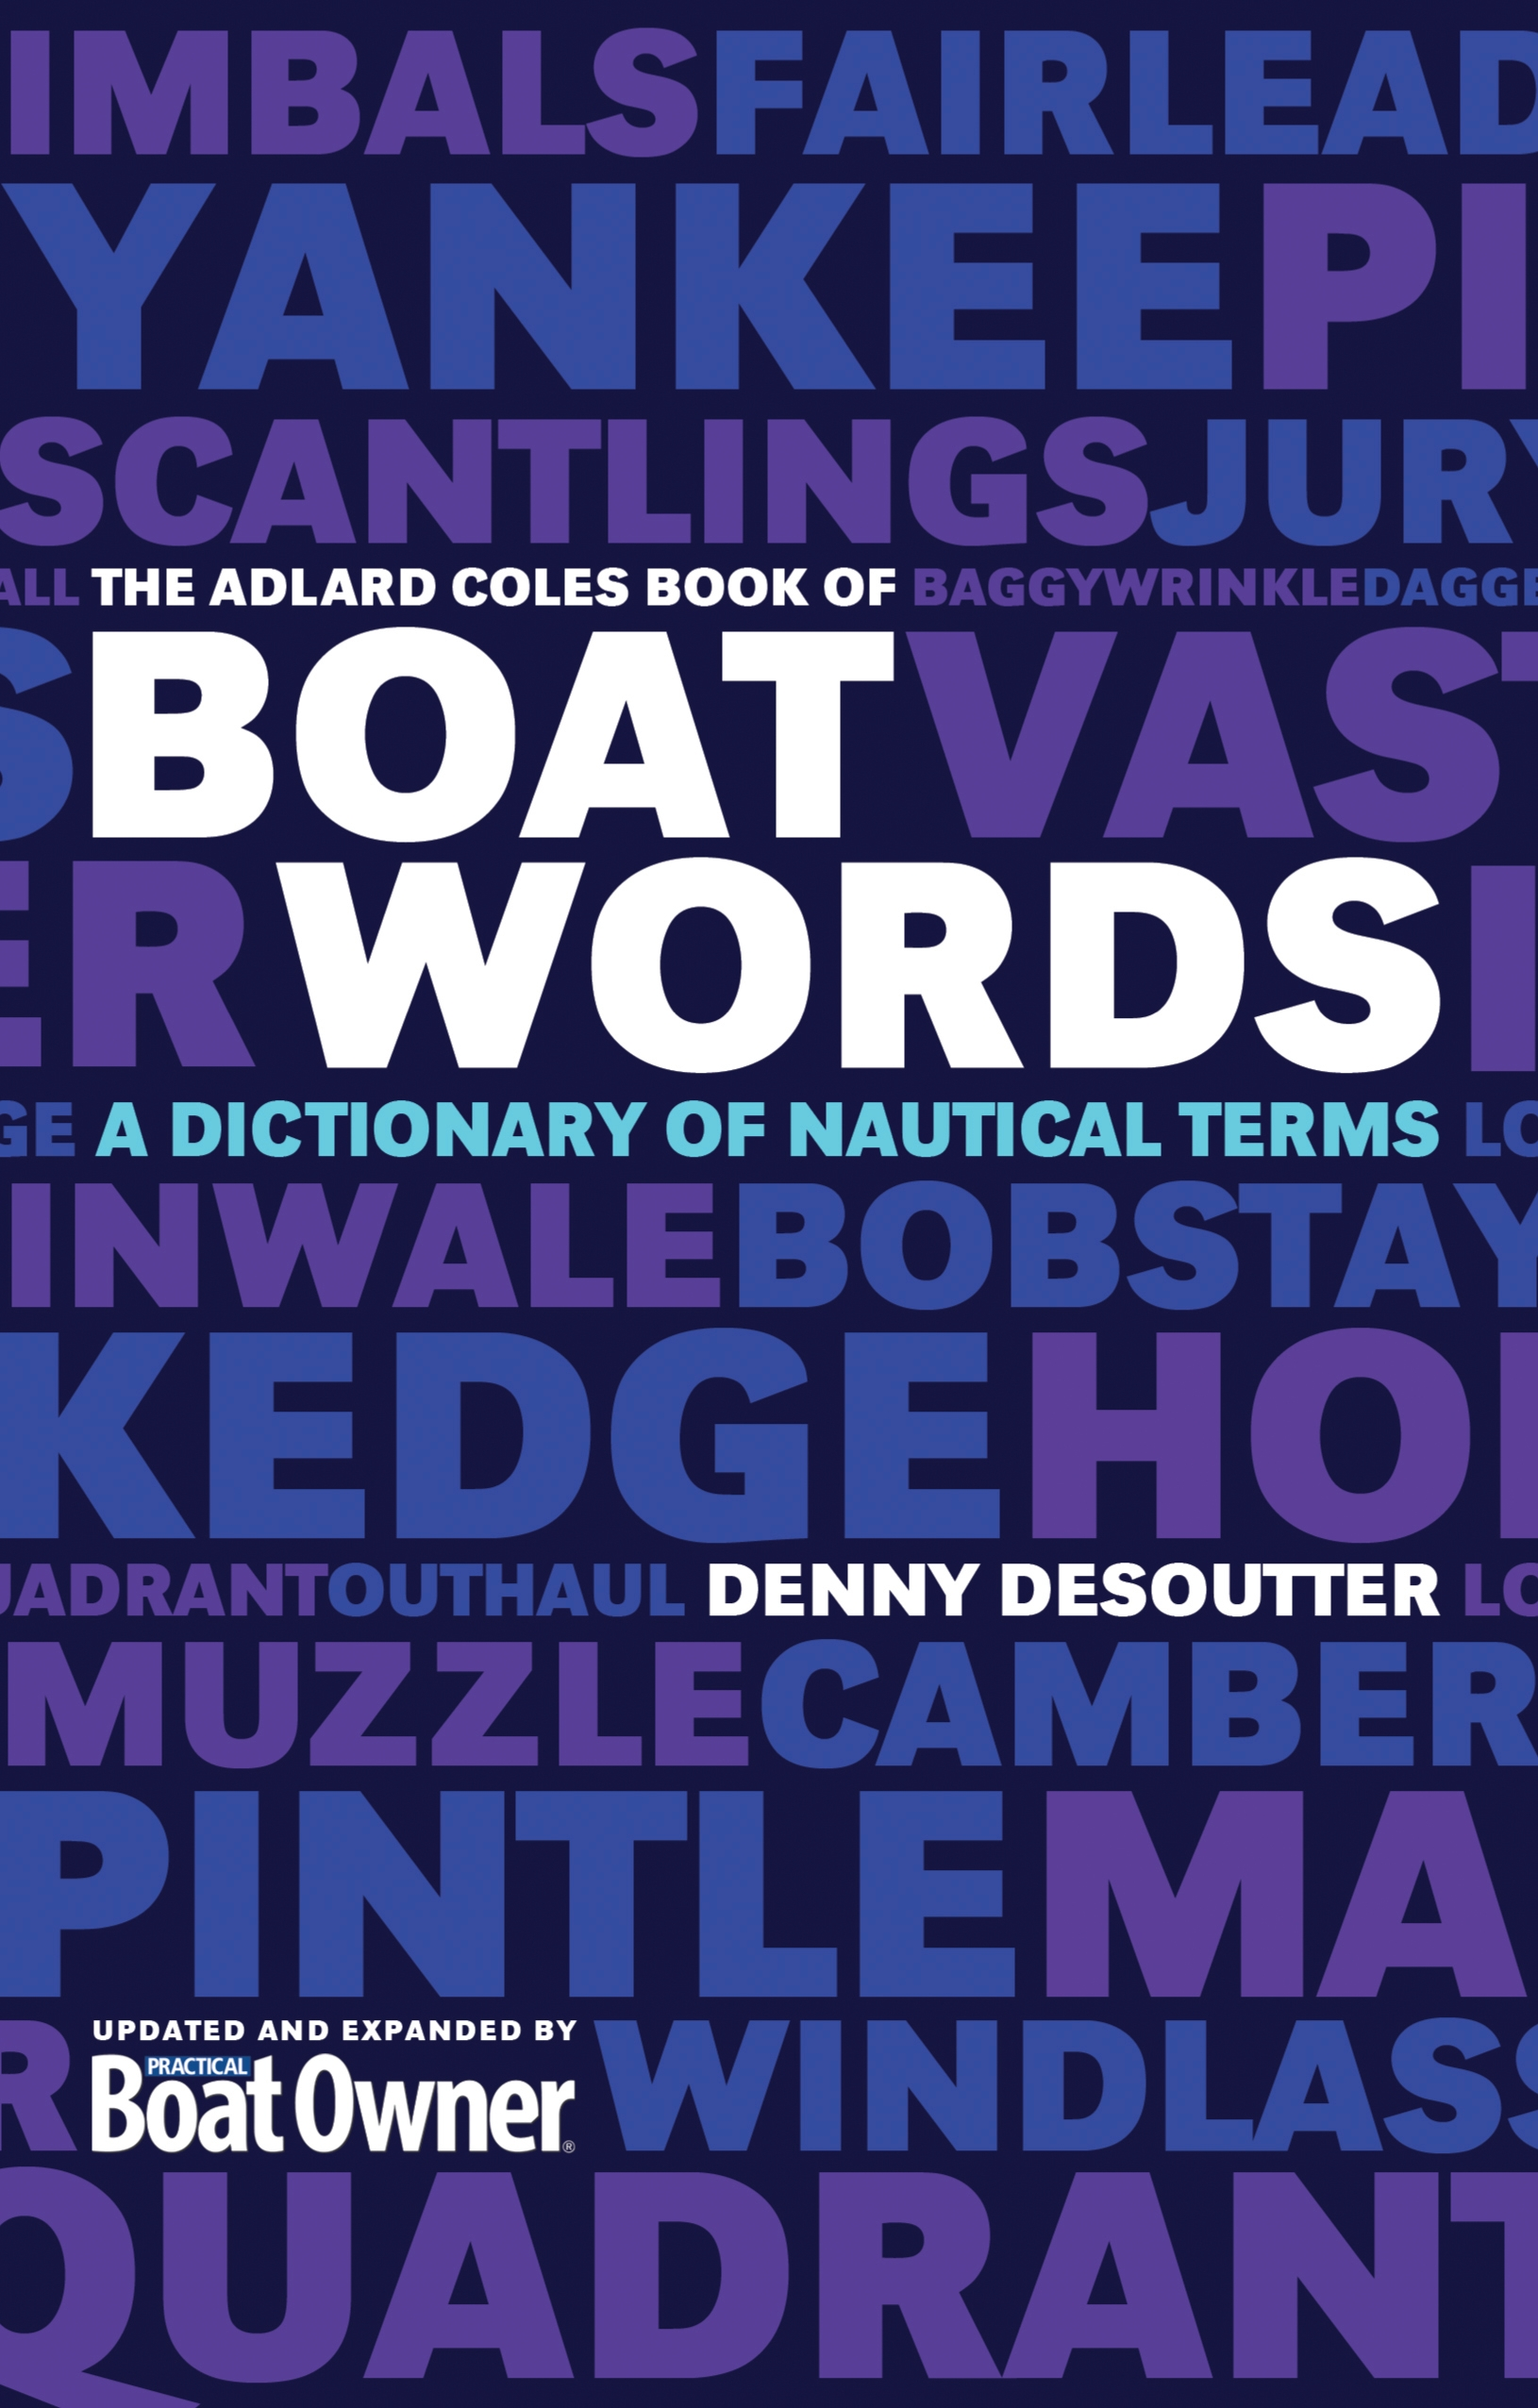 The Adlard Coles Book of Boatwords